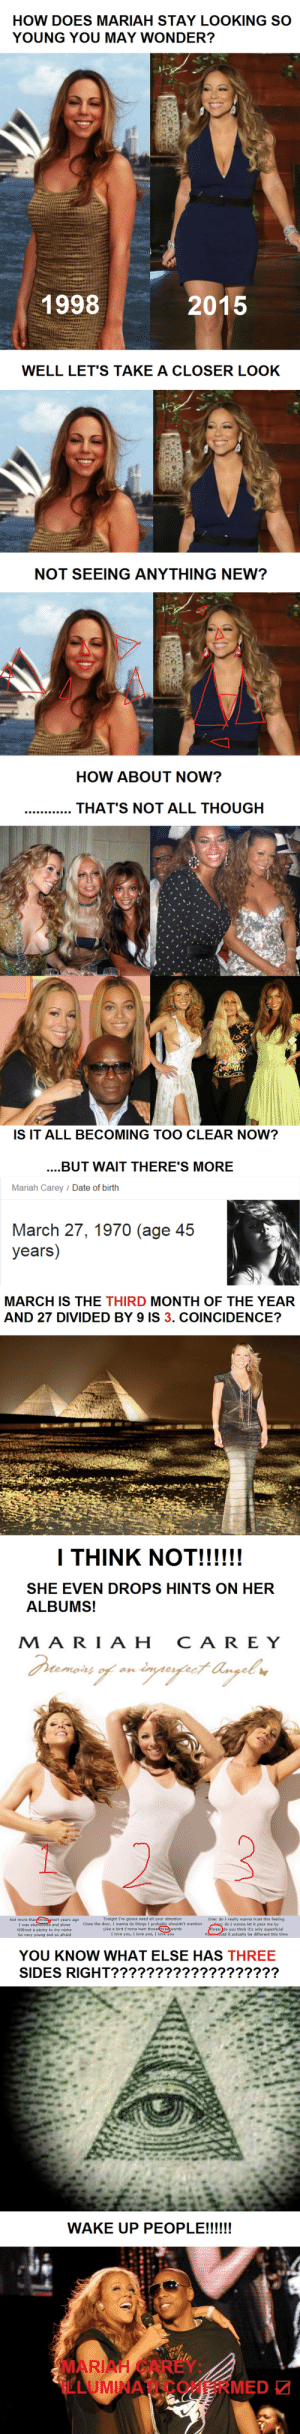 shaderiahcarey:  Mariah Carey: Illuminati Confirmed   ☑   : HOW DOES MARIAH STAY LOOKING SO  YOUNG YOU MAY WONDER?  2015  1998  WELL LET'S TAKE A CLOSER LOOK   NOT SEEING ANYTHING NEW?  HOW ABOUT NOW?  THAT'S NOT ALL THOUGH  ....   IS IT ALL BECOMING T0O CLEAR NOW?  .BUT WAIT THERE'S MORE  Mariah Carey / Date of birth  March 27, 1970 (age 45  years)  MARCH IS THE THIRD MONTH OF THE YEAR  AND 27 DIVIDED BY 9 IS 3. COINCIDENCE?   I THINK NOT!!!!!!  SHE EVEN DROPS HINTS ON HER  ALBUMS!  M A RI A H  CAREY  Dramors of an inpufrct Angel u  Not more than threeshort years ago  I was abanaoned and alone  Tonight I'm gonna need all your attention  Close the door, I wanna do things I probably shouldn't mention  Like a bird I'mma hum those three words  I love you, I love you, I love you  One: do I really wanna trust this feeling  Two: do I wanna let it pass me by  Three: do you think it's only superficial  Foucould it actually be different this time  Without a penny to my name  So very young and so afraid   YOU KNOW WHAT ELSE HAS THREE  SIDES RIGHT???????????????????  WAKE UP PEOPLE!!!!!!  SMARIAH CAREY:  LLUMINA OMERMED shaderiahcarey:  Mariah Carey: Illuminati Confirmed   ☑